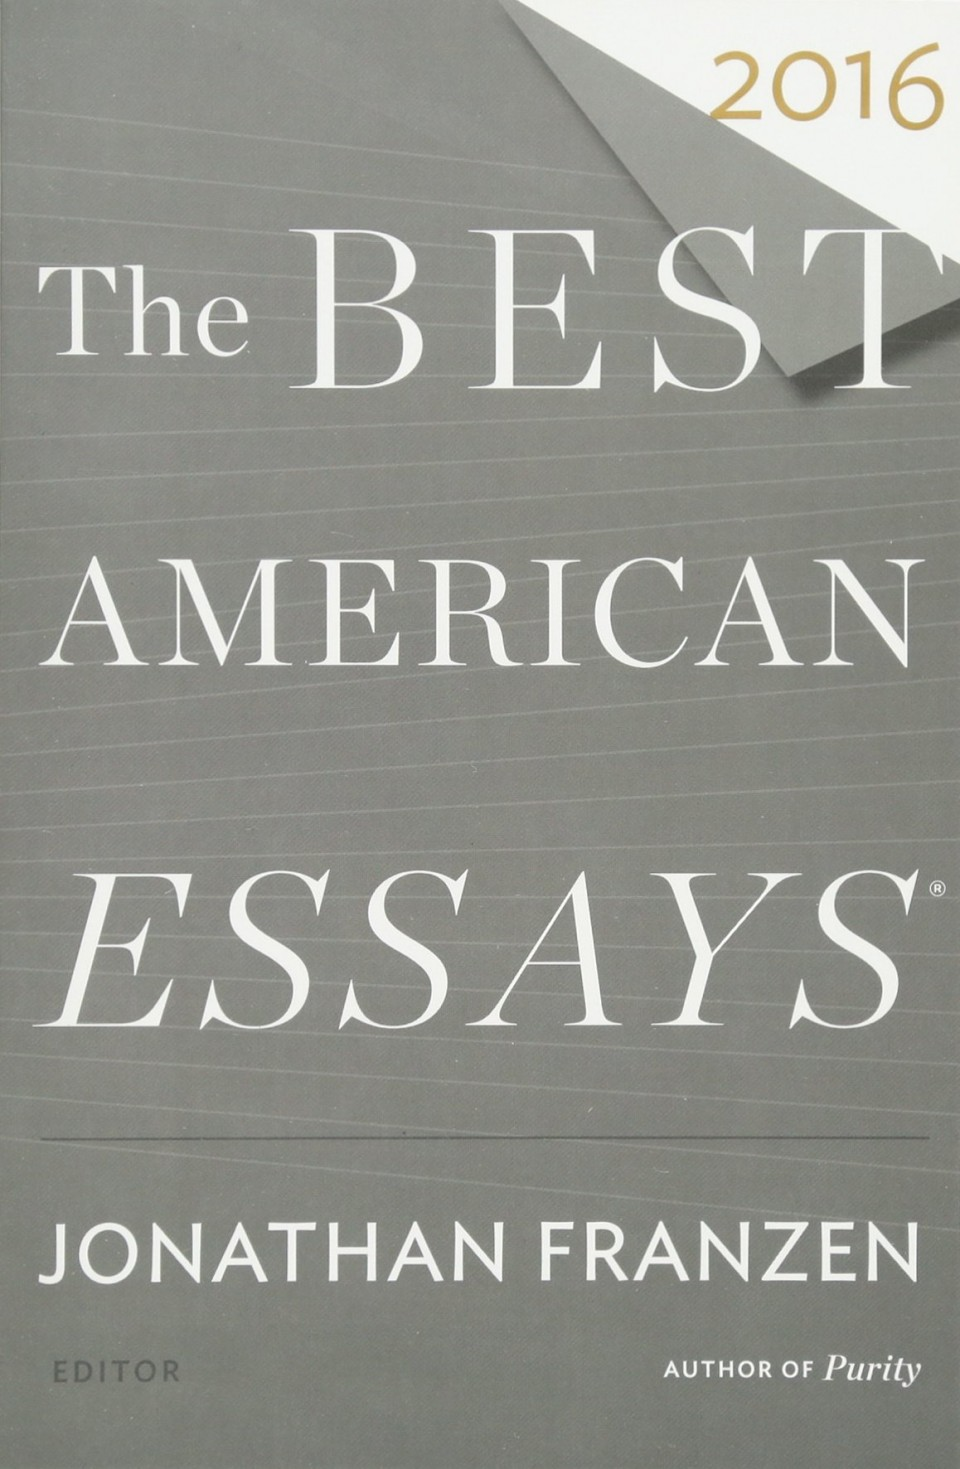 001 71a6bhsgsdl The Best American Essays Essay Phenomenal 2016 Pdf Download Audiobook Sparknotes 960